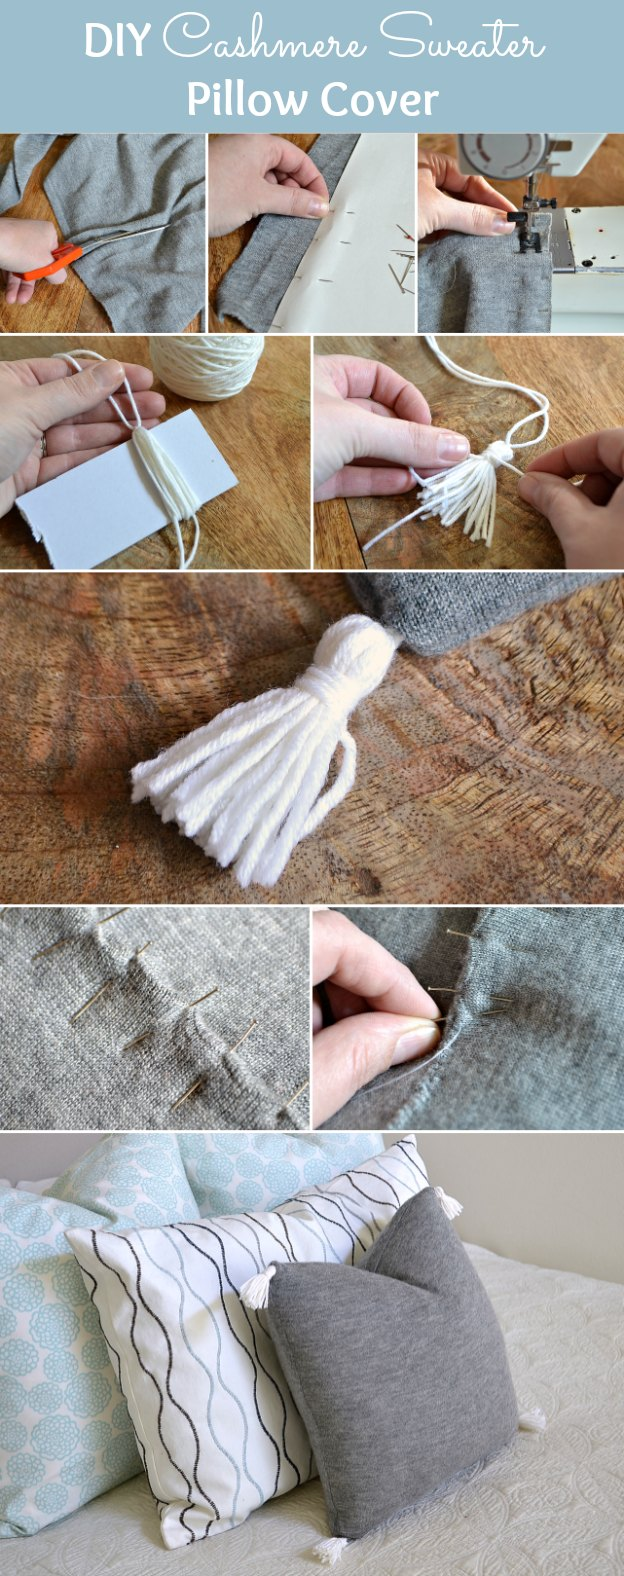 Step-by-step instructions for making a gorgeous DIY Cashmere Sweater Pillow Cover! | Hello Little Home #stylebymethod #clevermethod